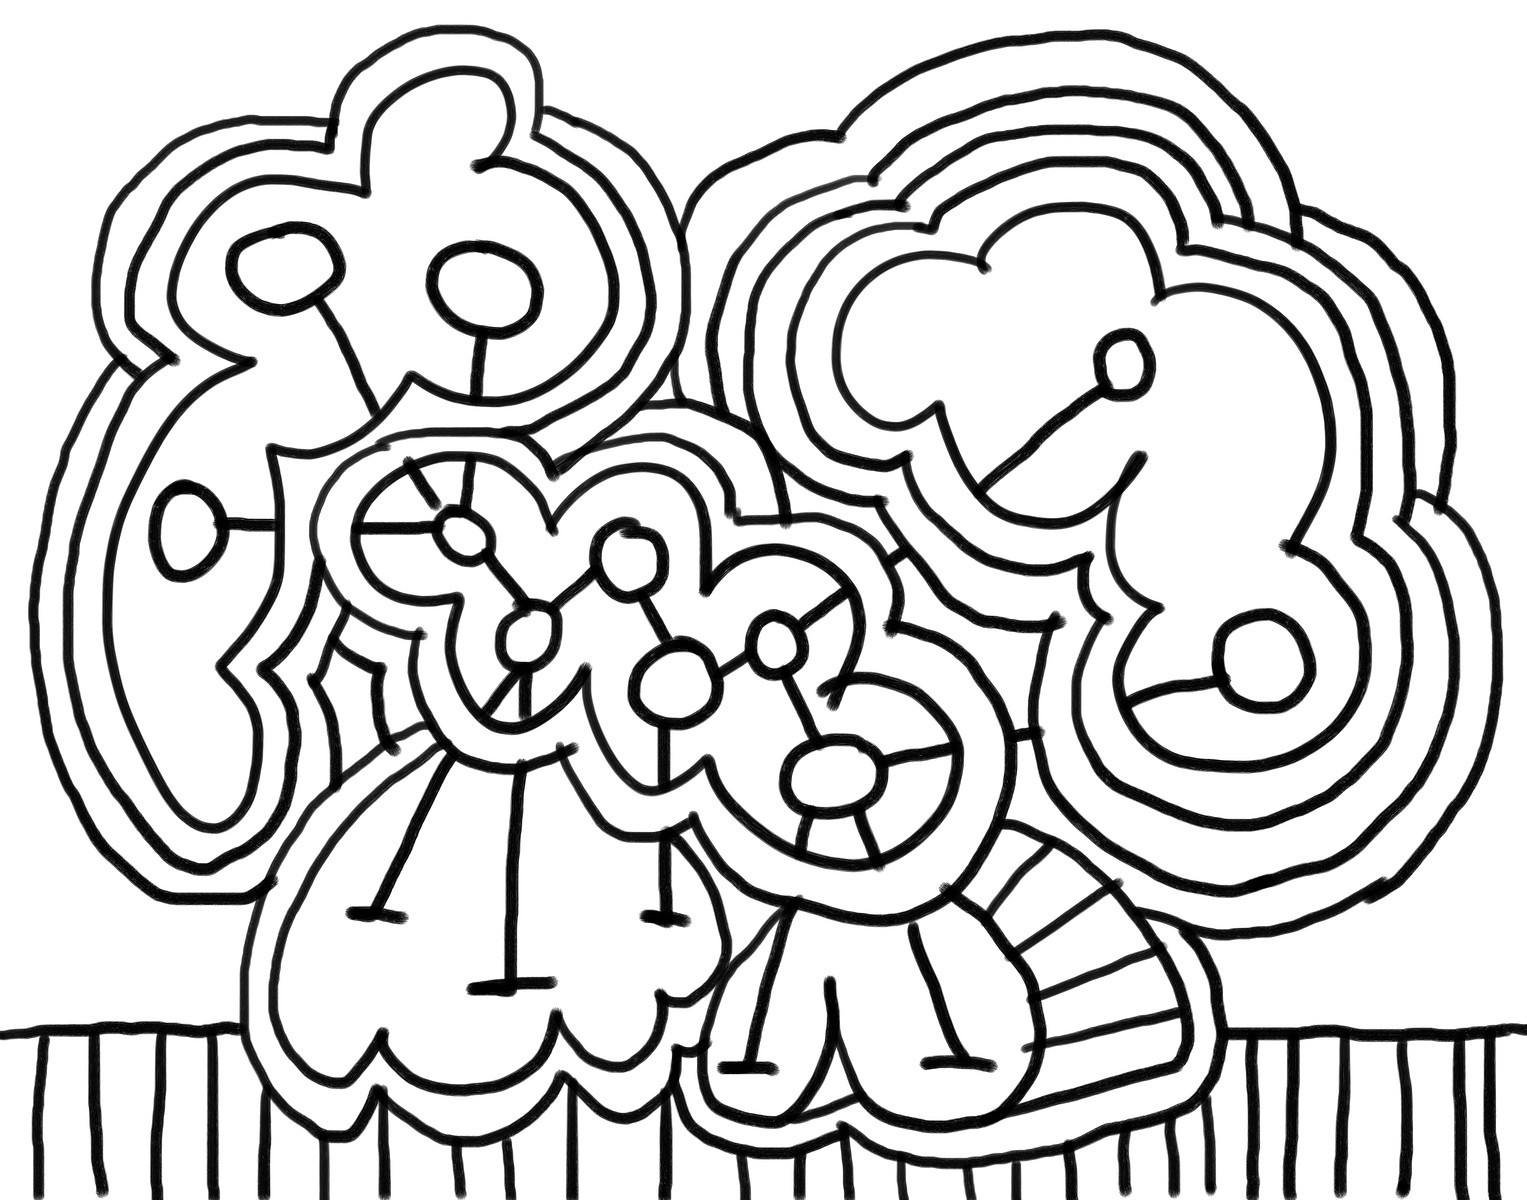 abstract coloring pages for kids - Coloring Pages Art